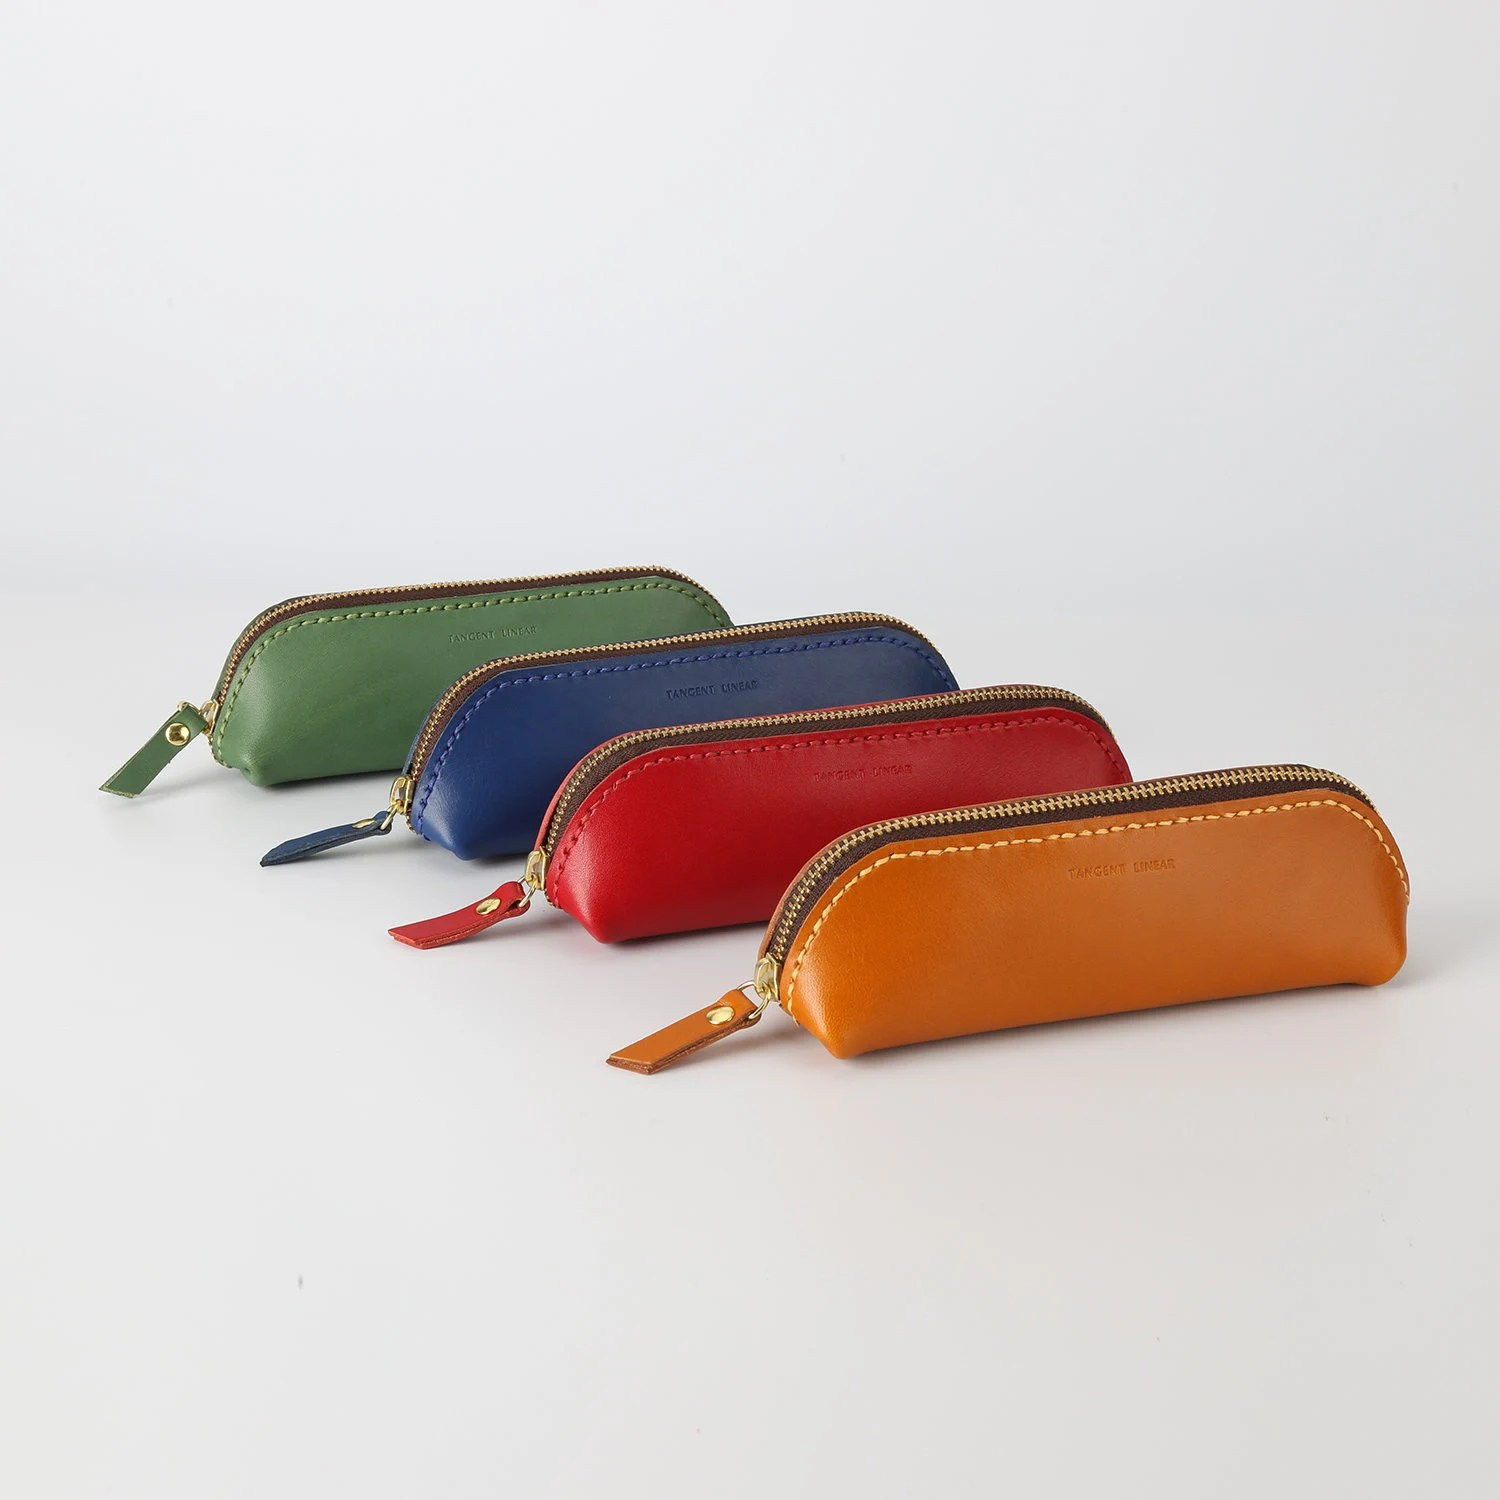 leather pencil pouch etsy